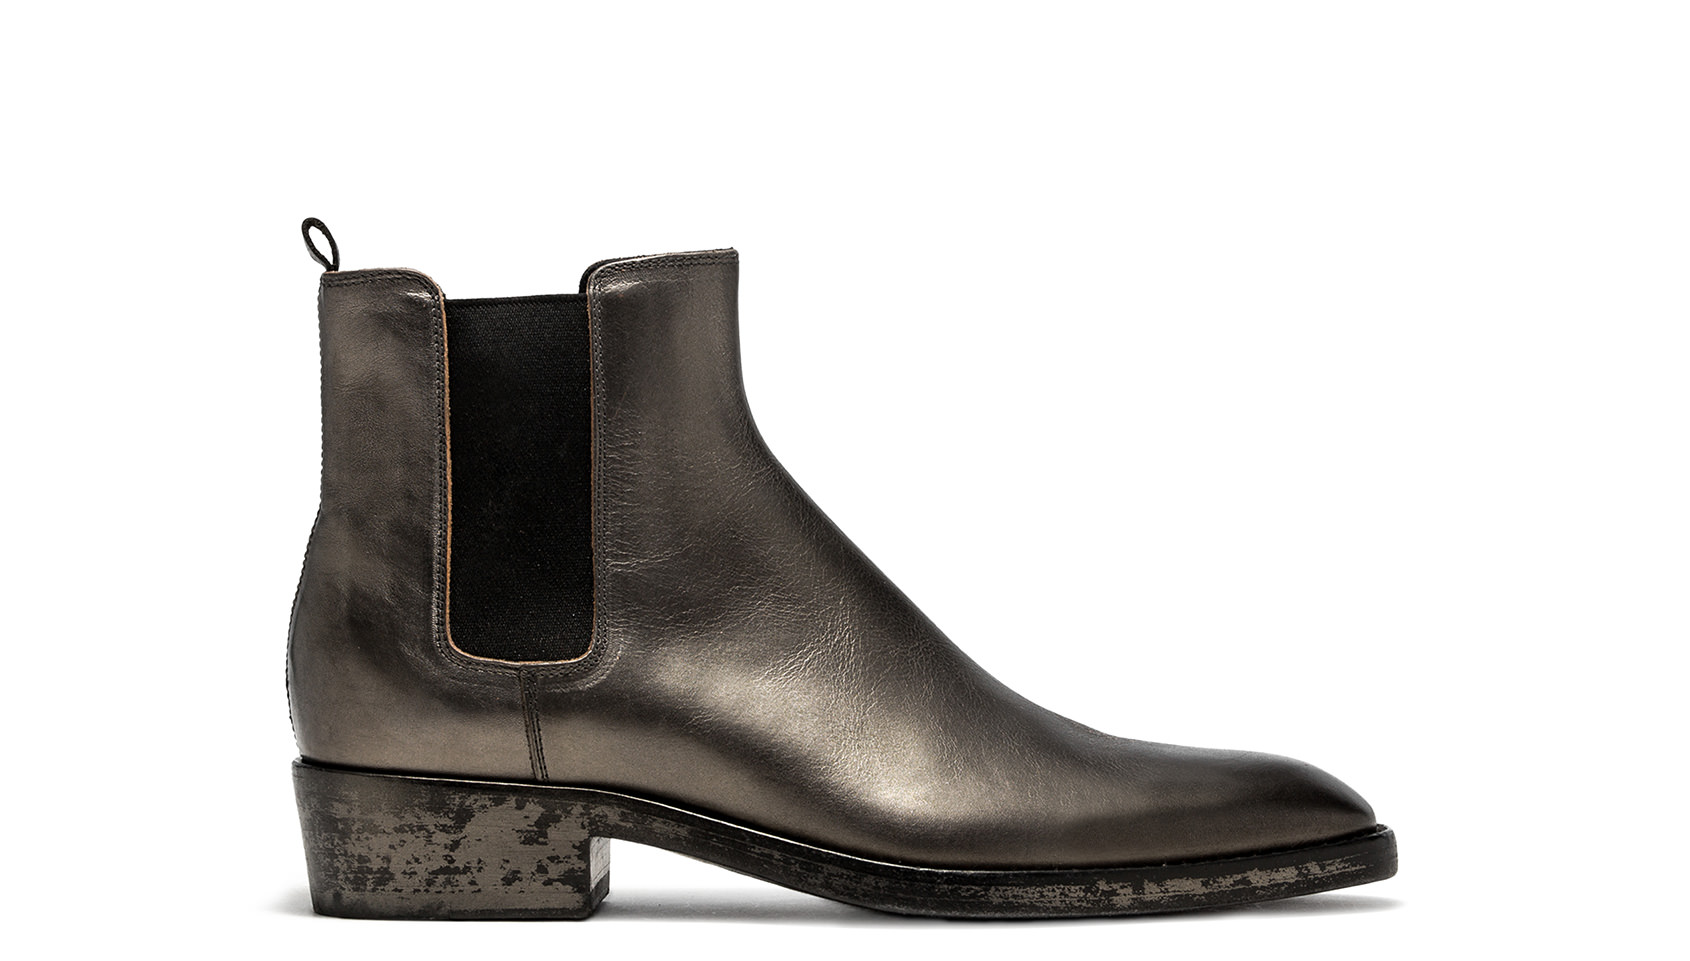 BUTTERO: SILVER LAMINATED LEATHER QUENTIN BOOTS